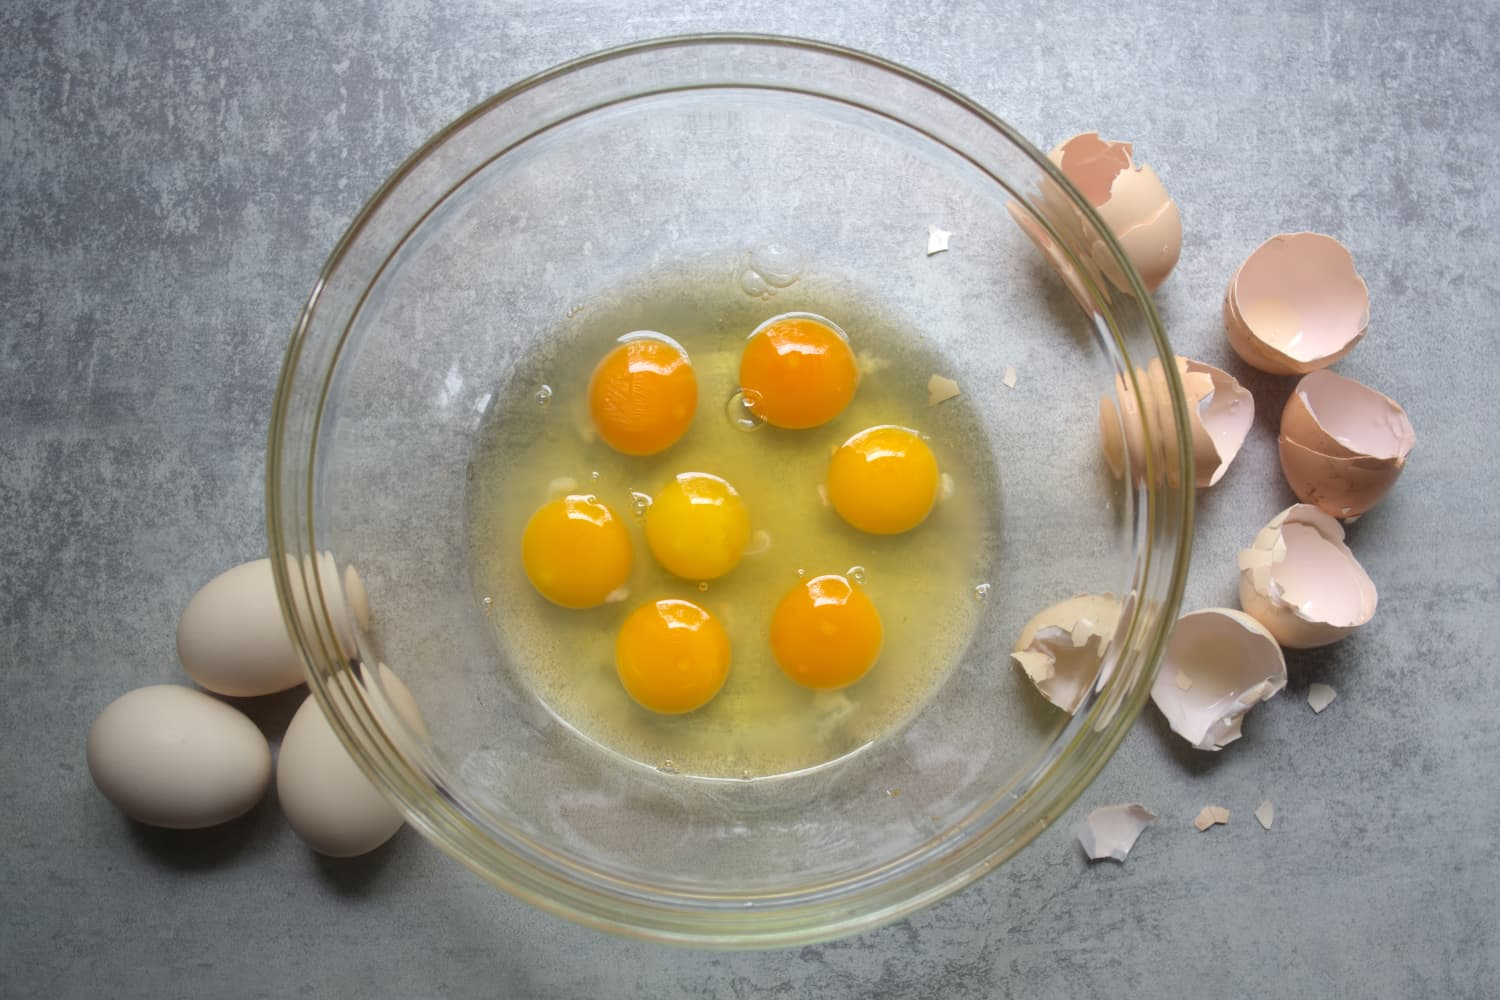 We're Completely Mesmerized by This Technique for Poaching 30 (!!!!) Eggs at Once